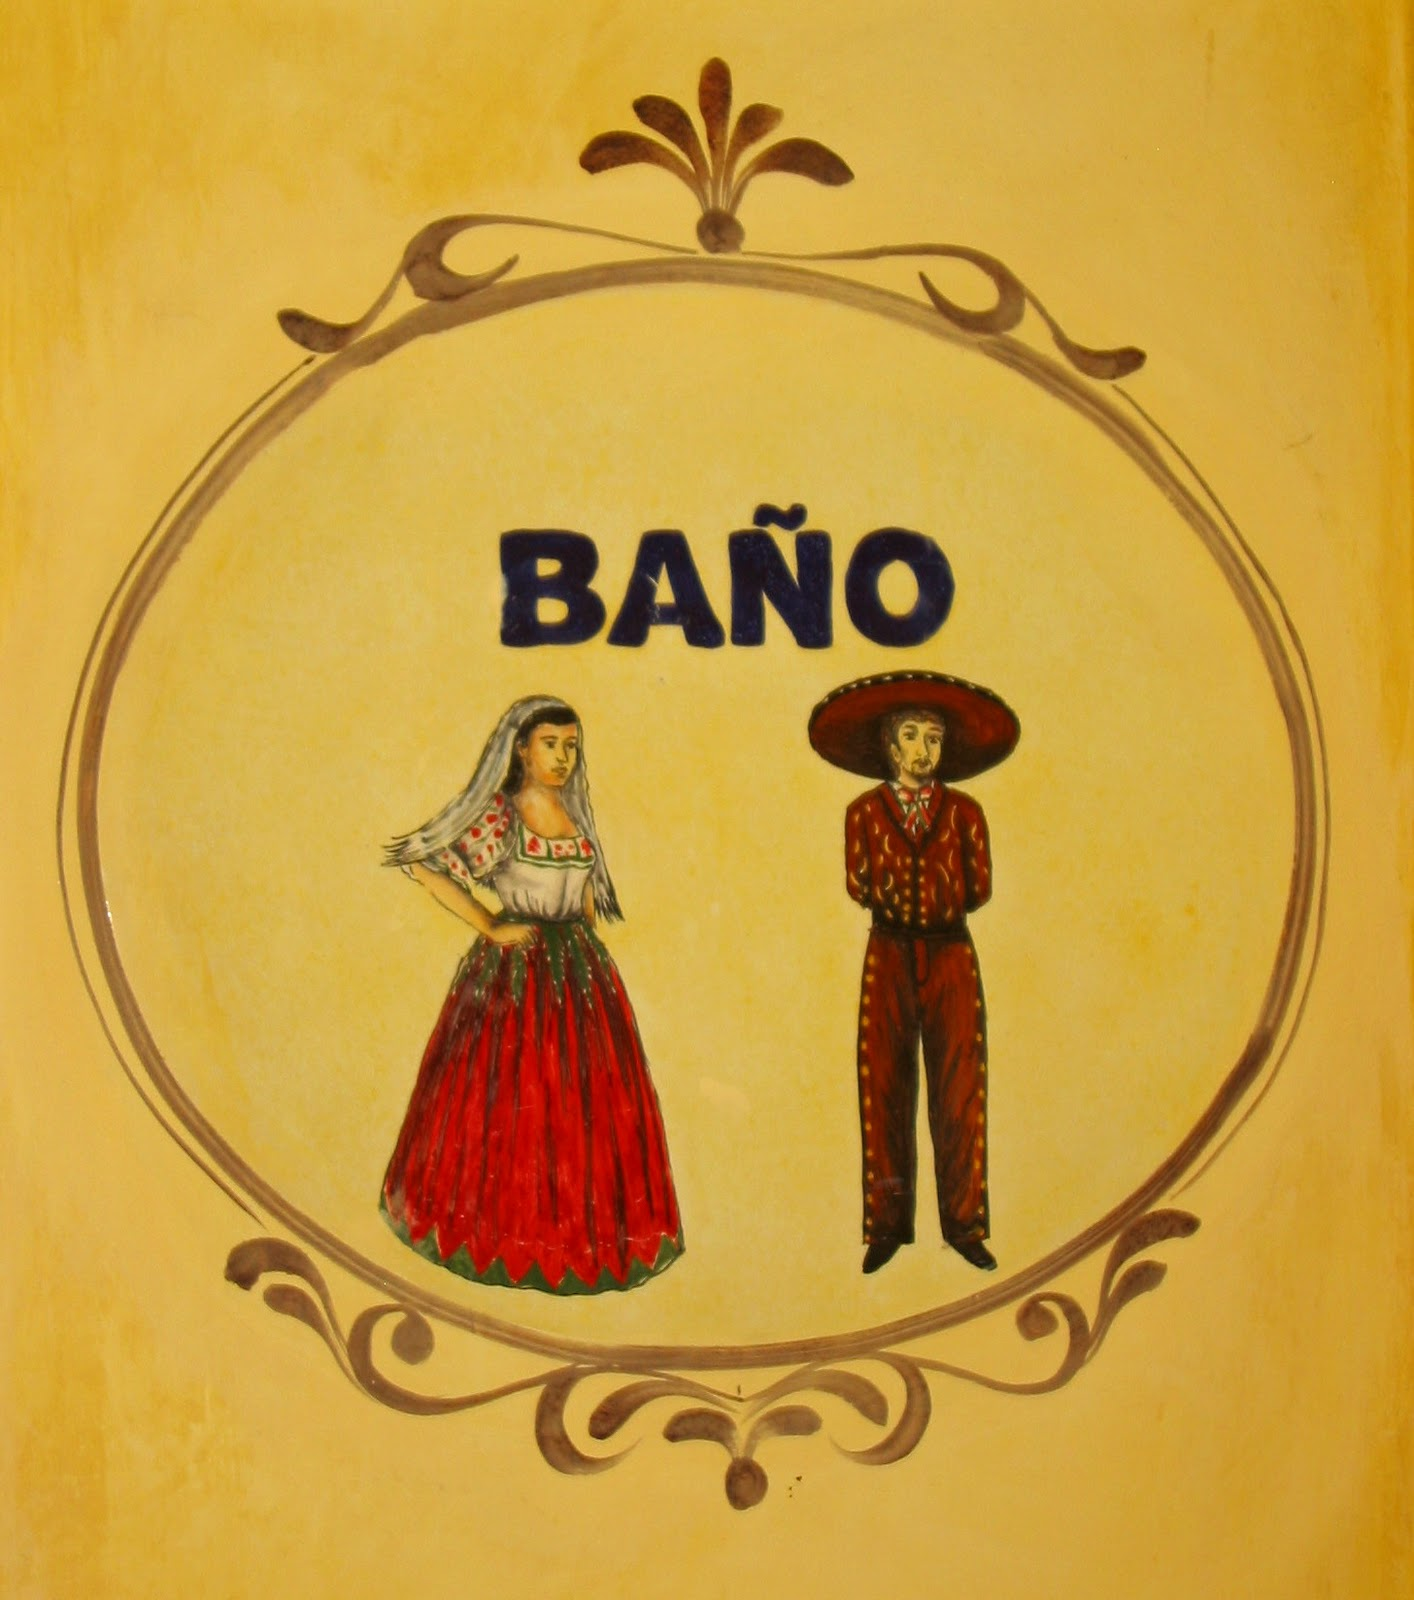 This is the sign for the bathrooms at the Posada de Las Minas in Pozos  The  woman is wearing the typical national costume of Mexico  a long  full green  and. Robin Talks  Cooks and Travels  Murals of all kinds